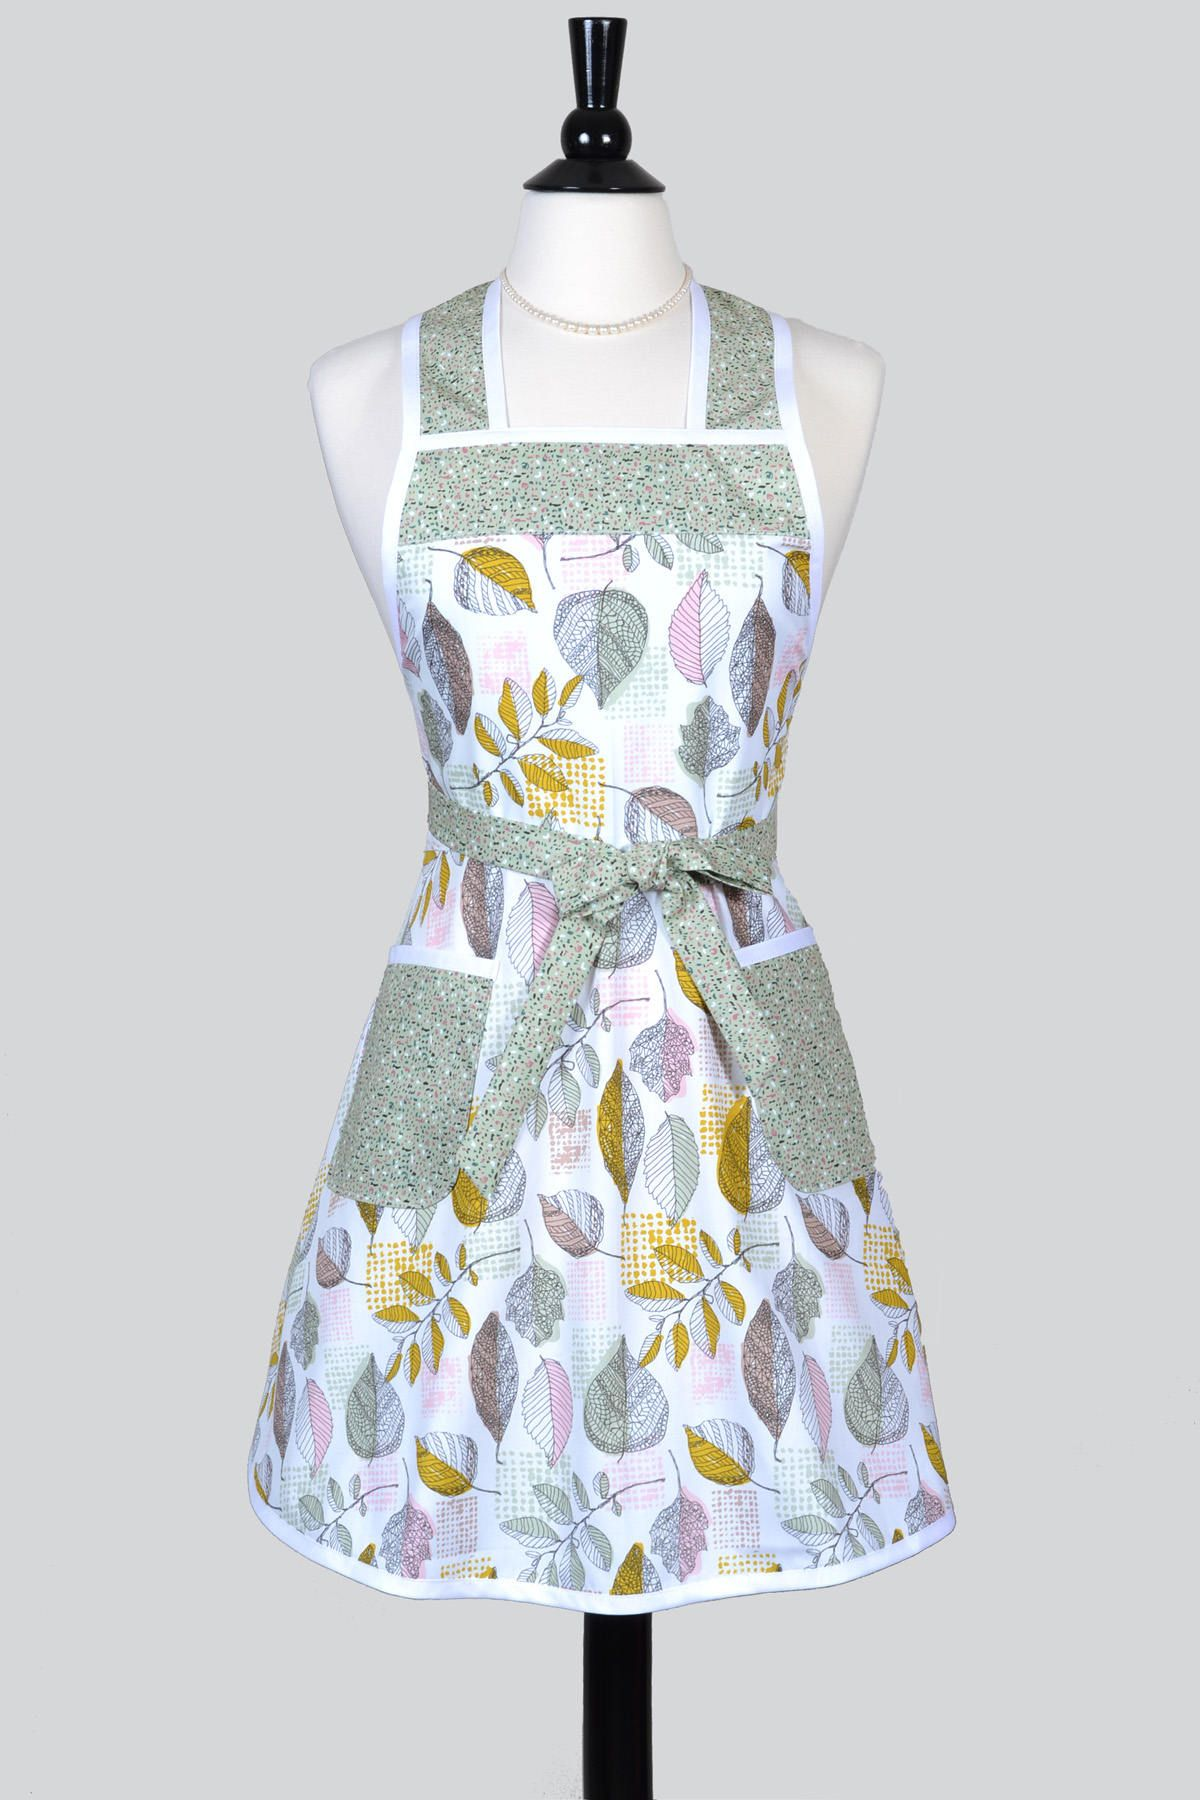 STELLA Retro Housewife Apron - Earthy Sage Leaves on White Womens ...